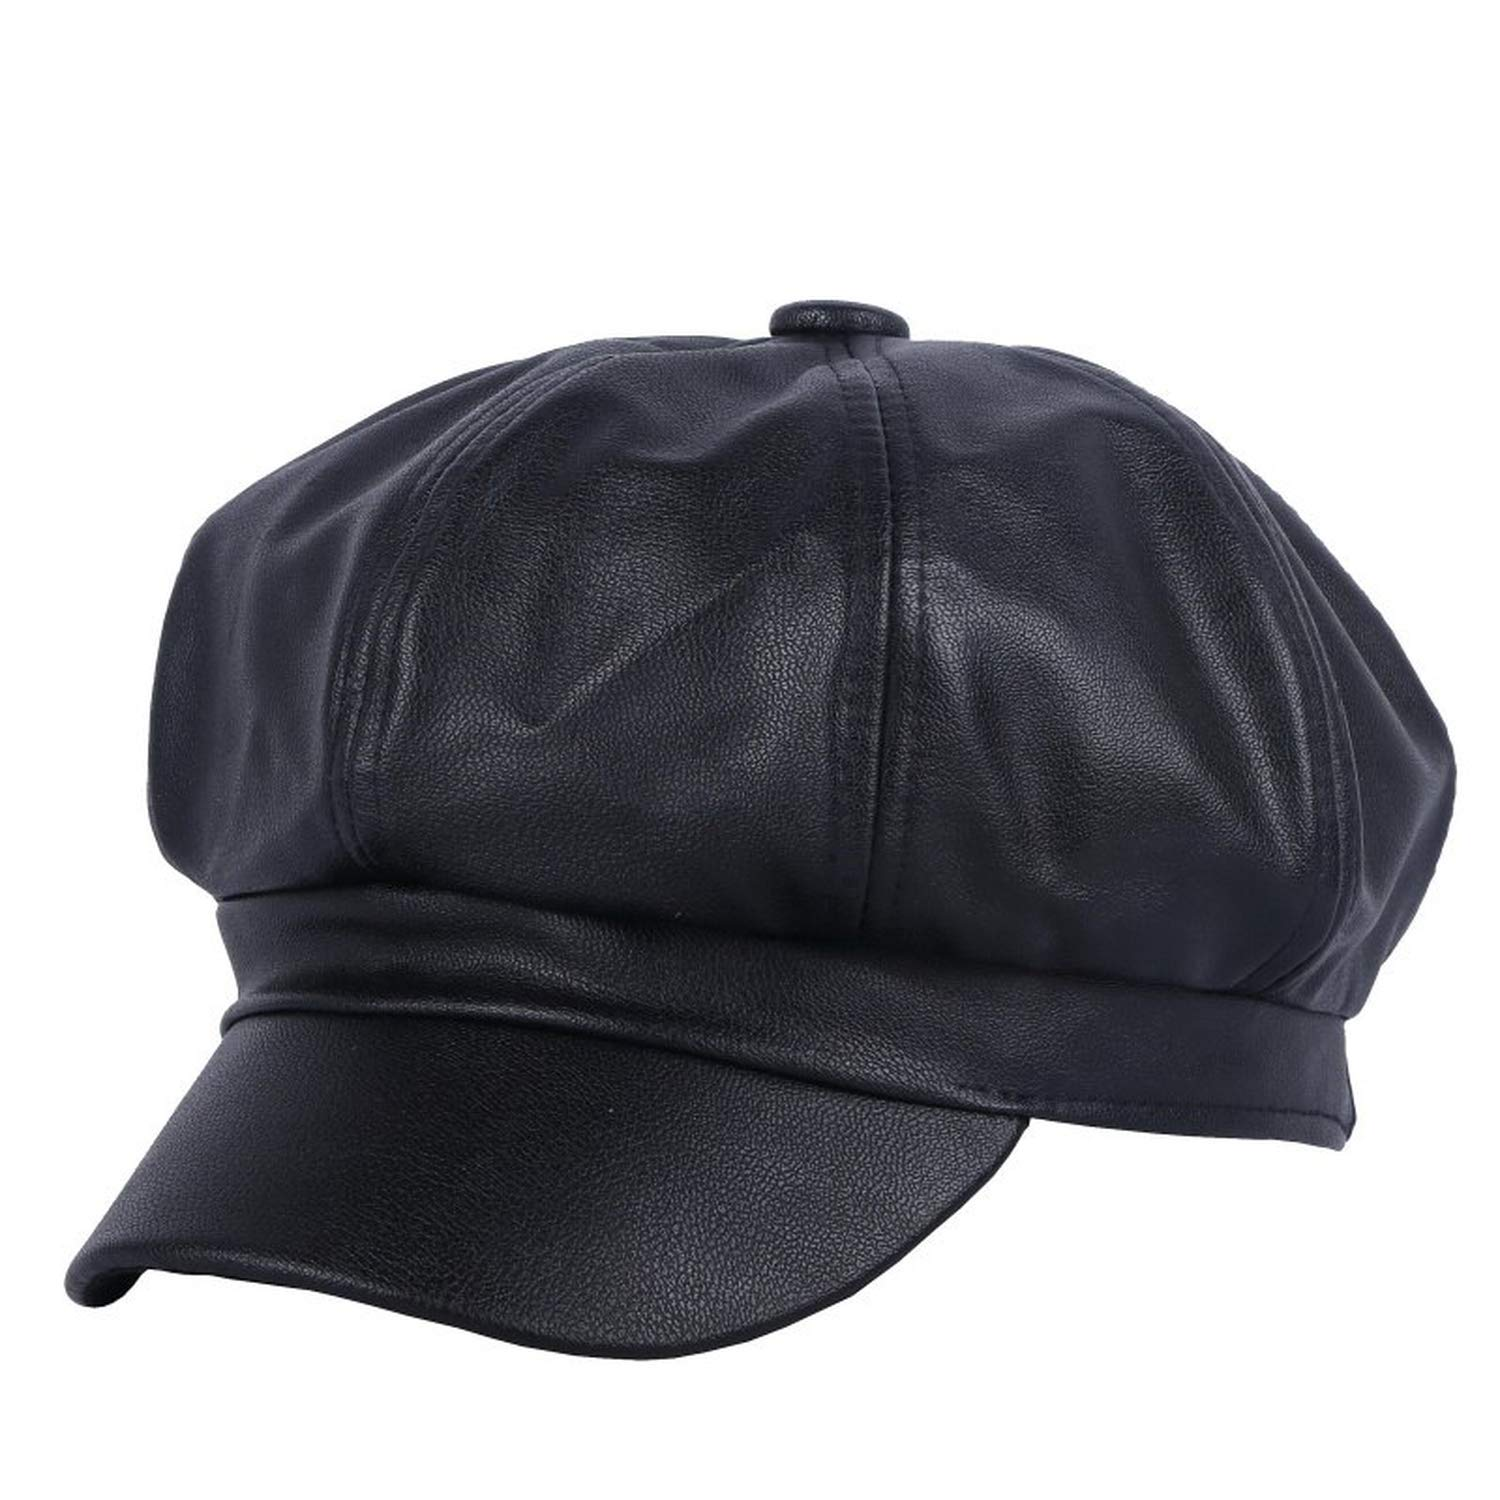 Get Quotations · Women New Octagonal Hats Fashion Newsboy Cap for Women Pu Solid  Leather 54-57Cm Thick b423bc10ccb2